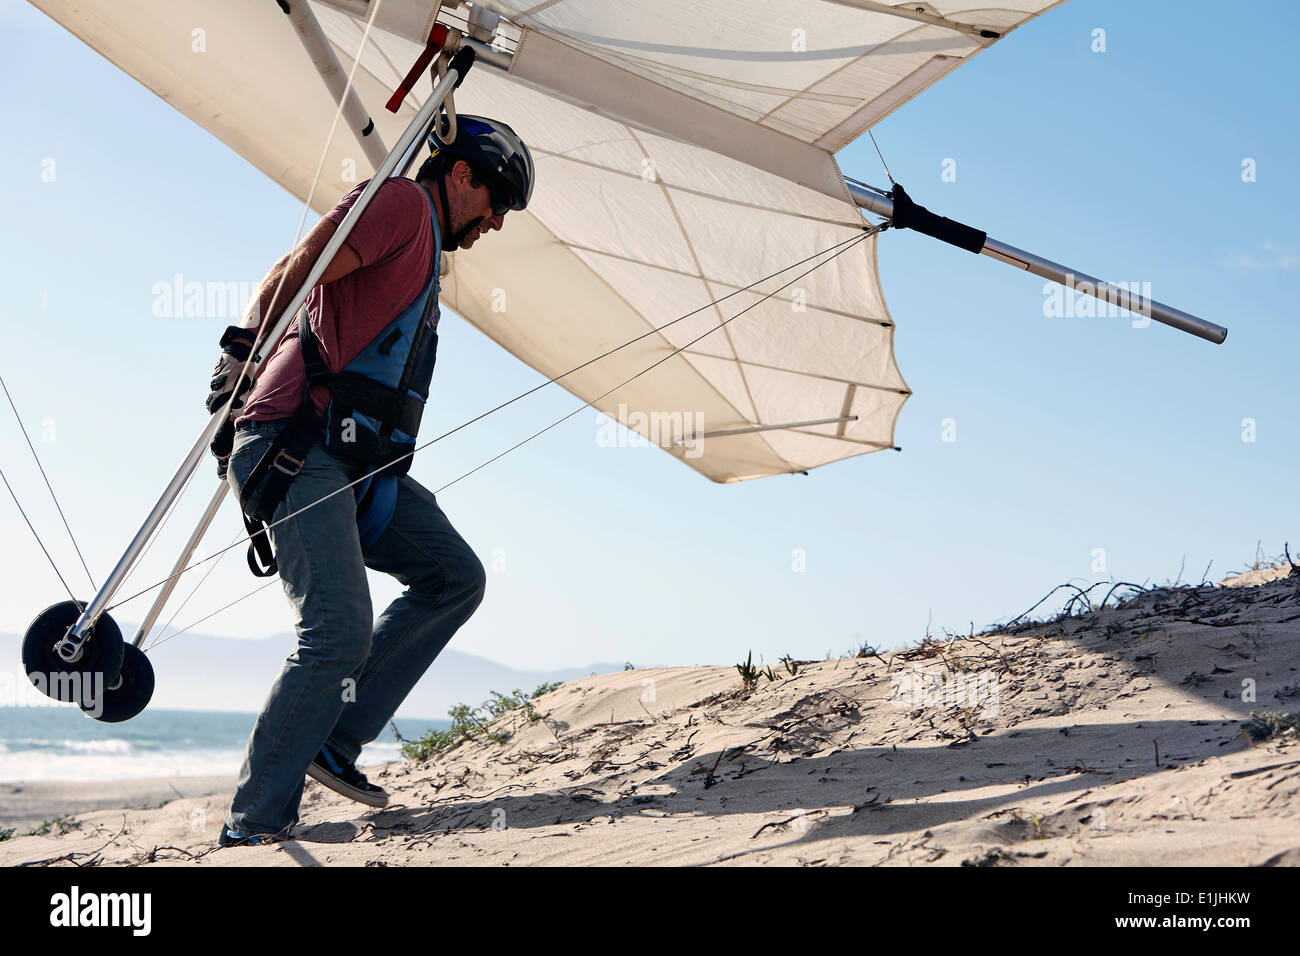 Man carrying hang glider on beach - Stock Image